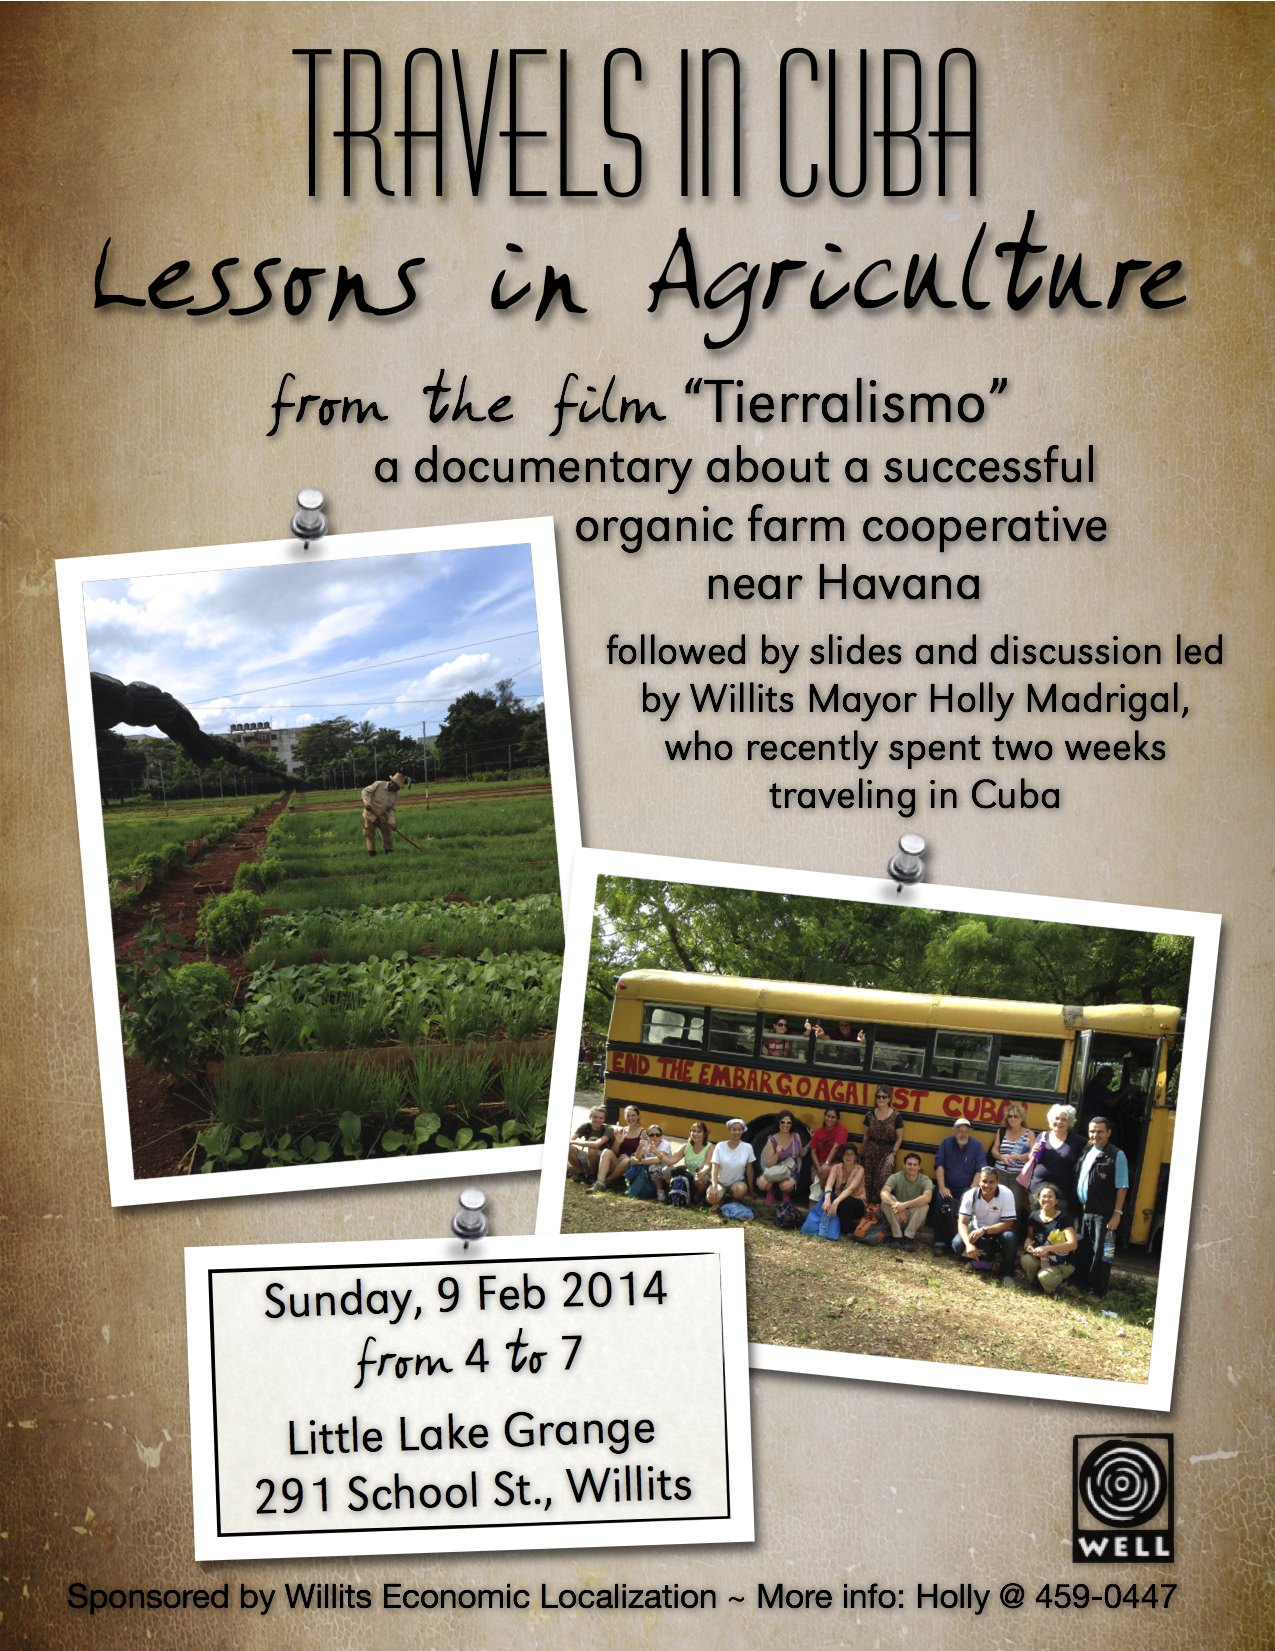 Travels in CUBA - Lessons in Agriculture